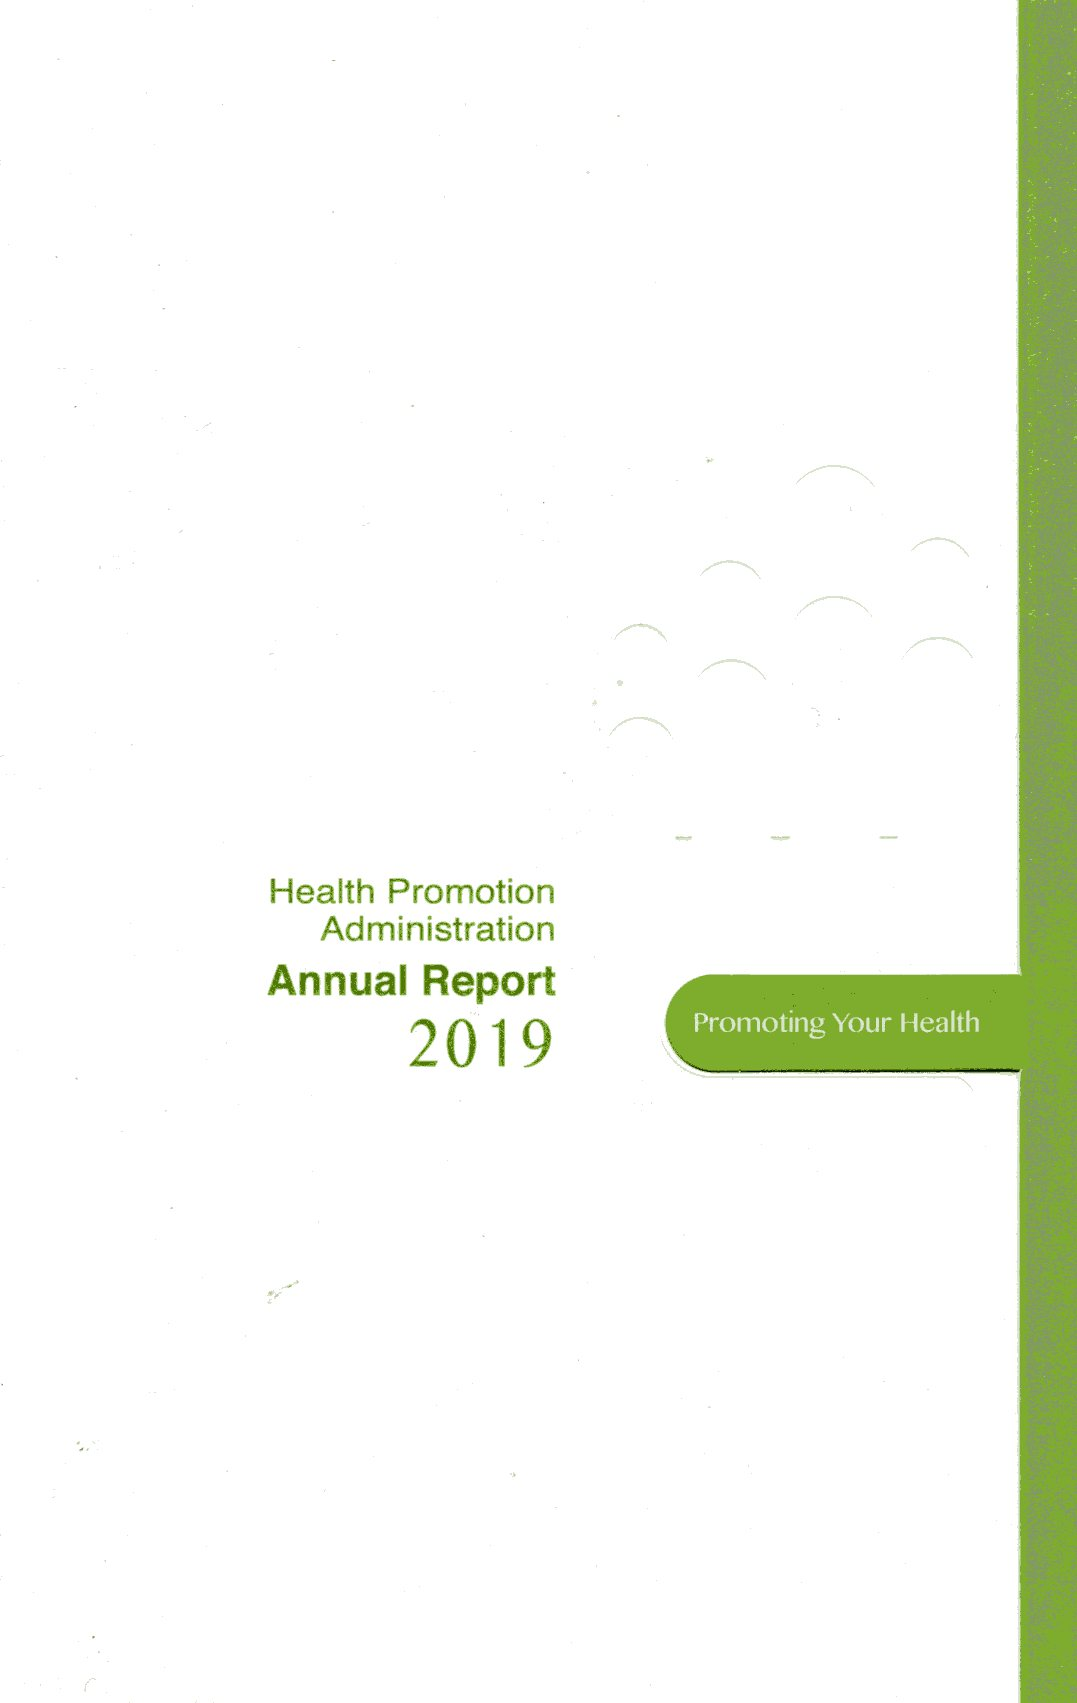 Health Promotion Administration 2019 Annual Report  (2019國民健康署年報-英文版)(108/12)